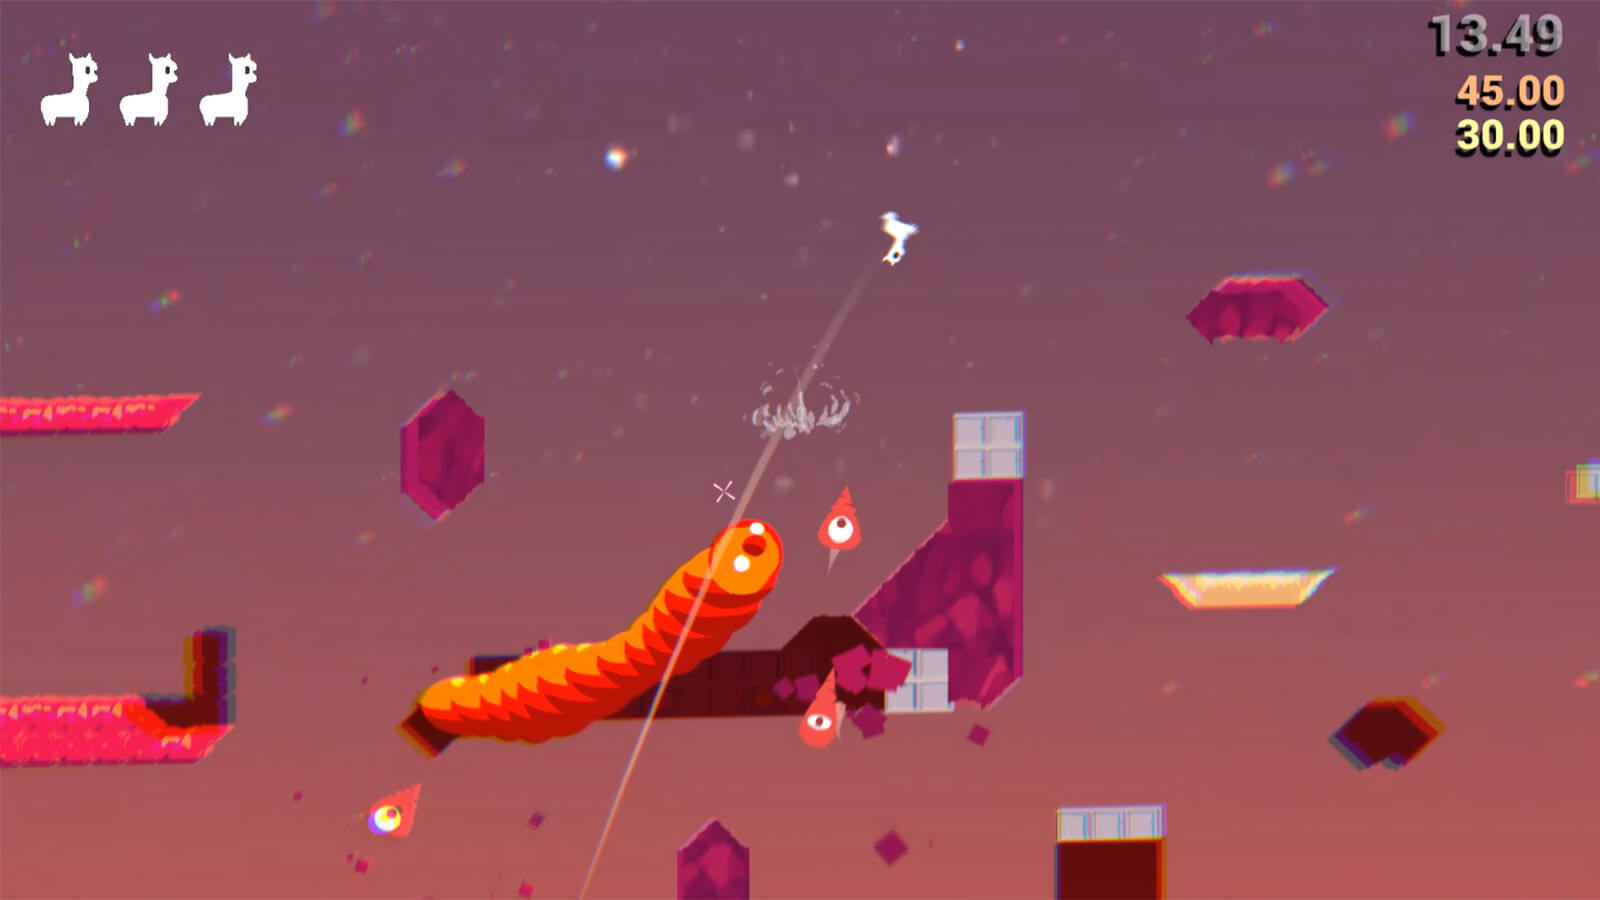 A small, white, two-dimensional alpaca flips through the air spitting at orange drill-shaped and worm-shaped enemies.